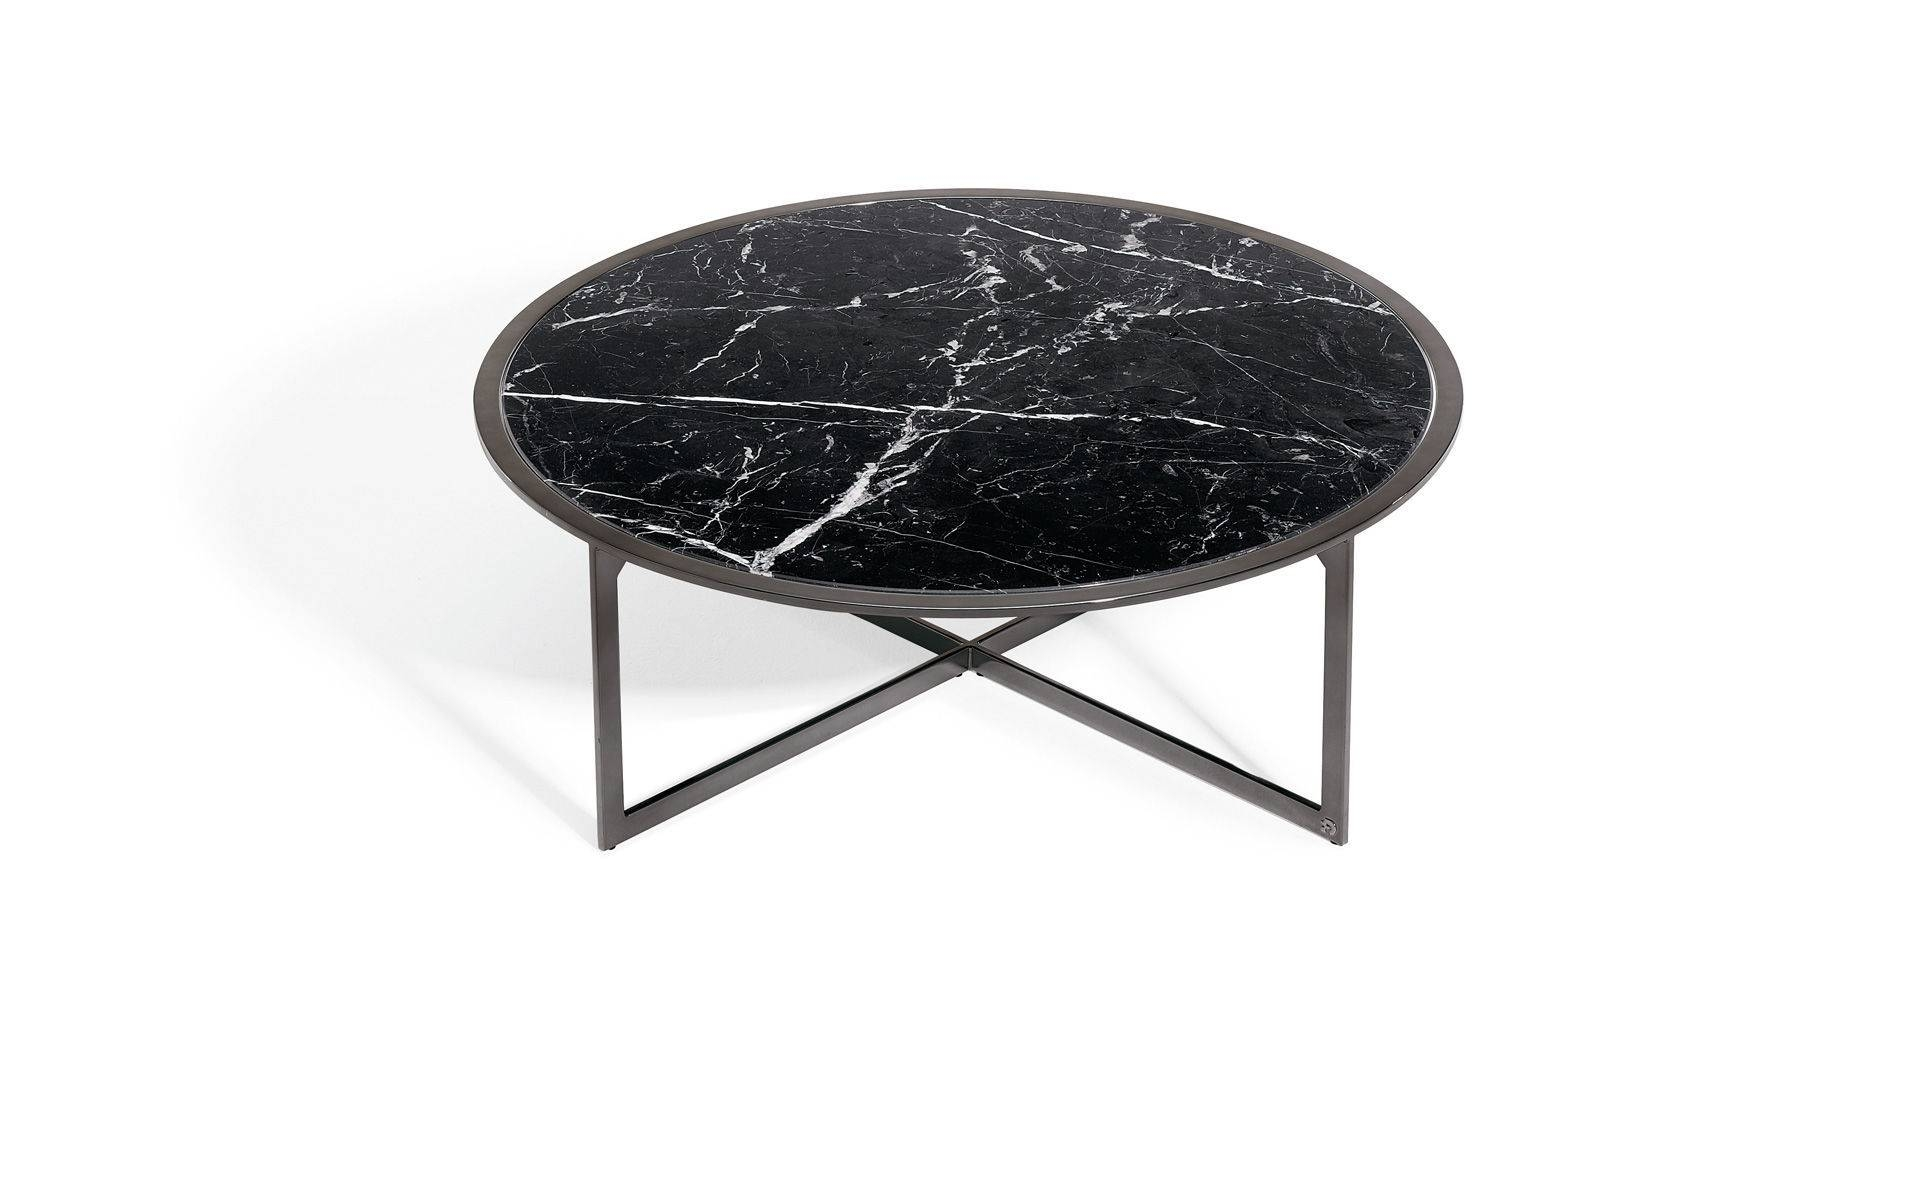 Contemporary Coffee Table / Glass / Natural Stone / Round - 1350-I pertaining to Contemporary Coffee Table (Image 4 of 30)